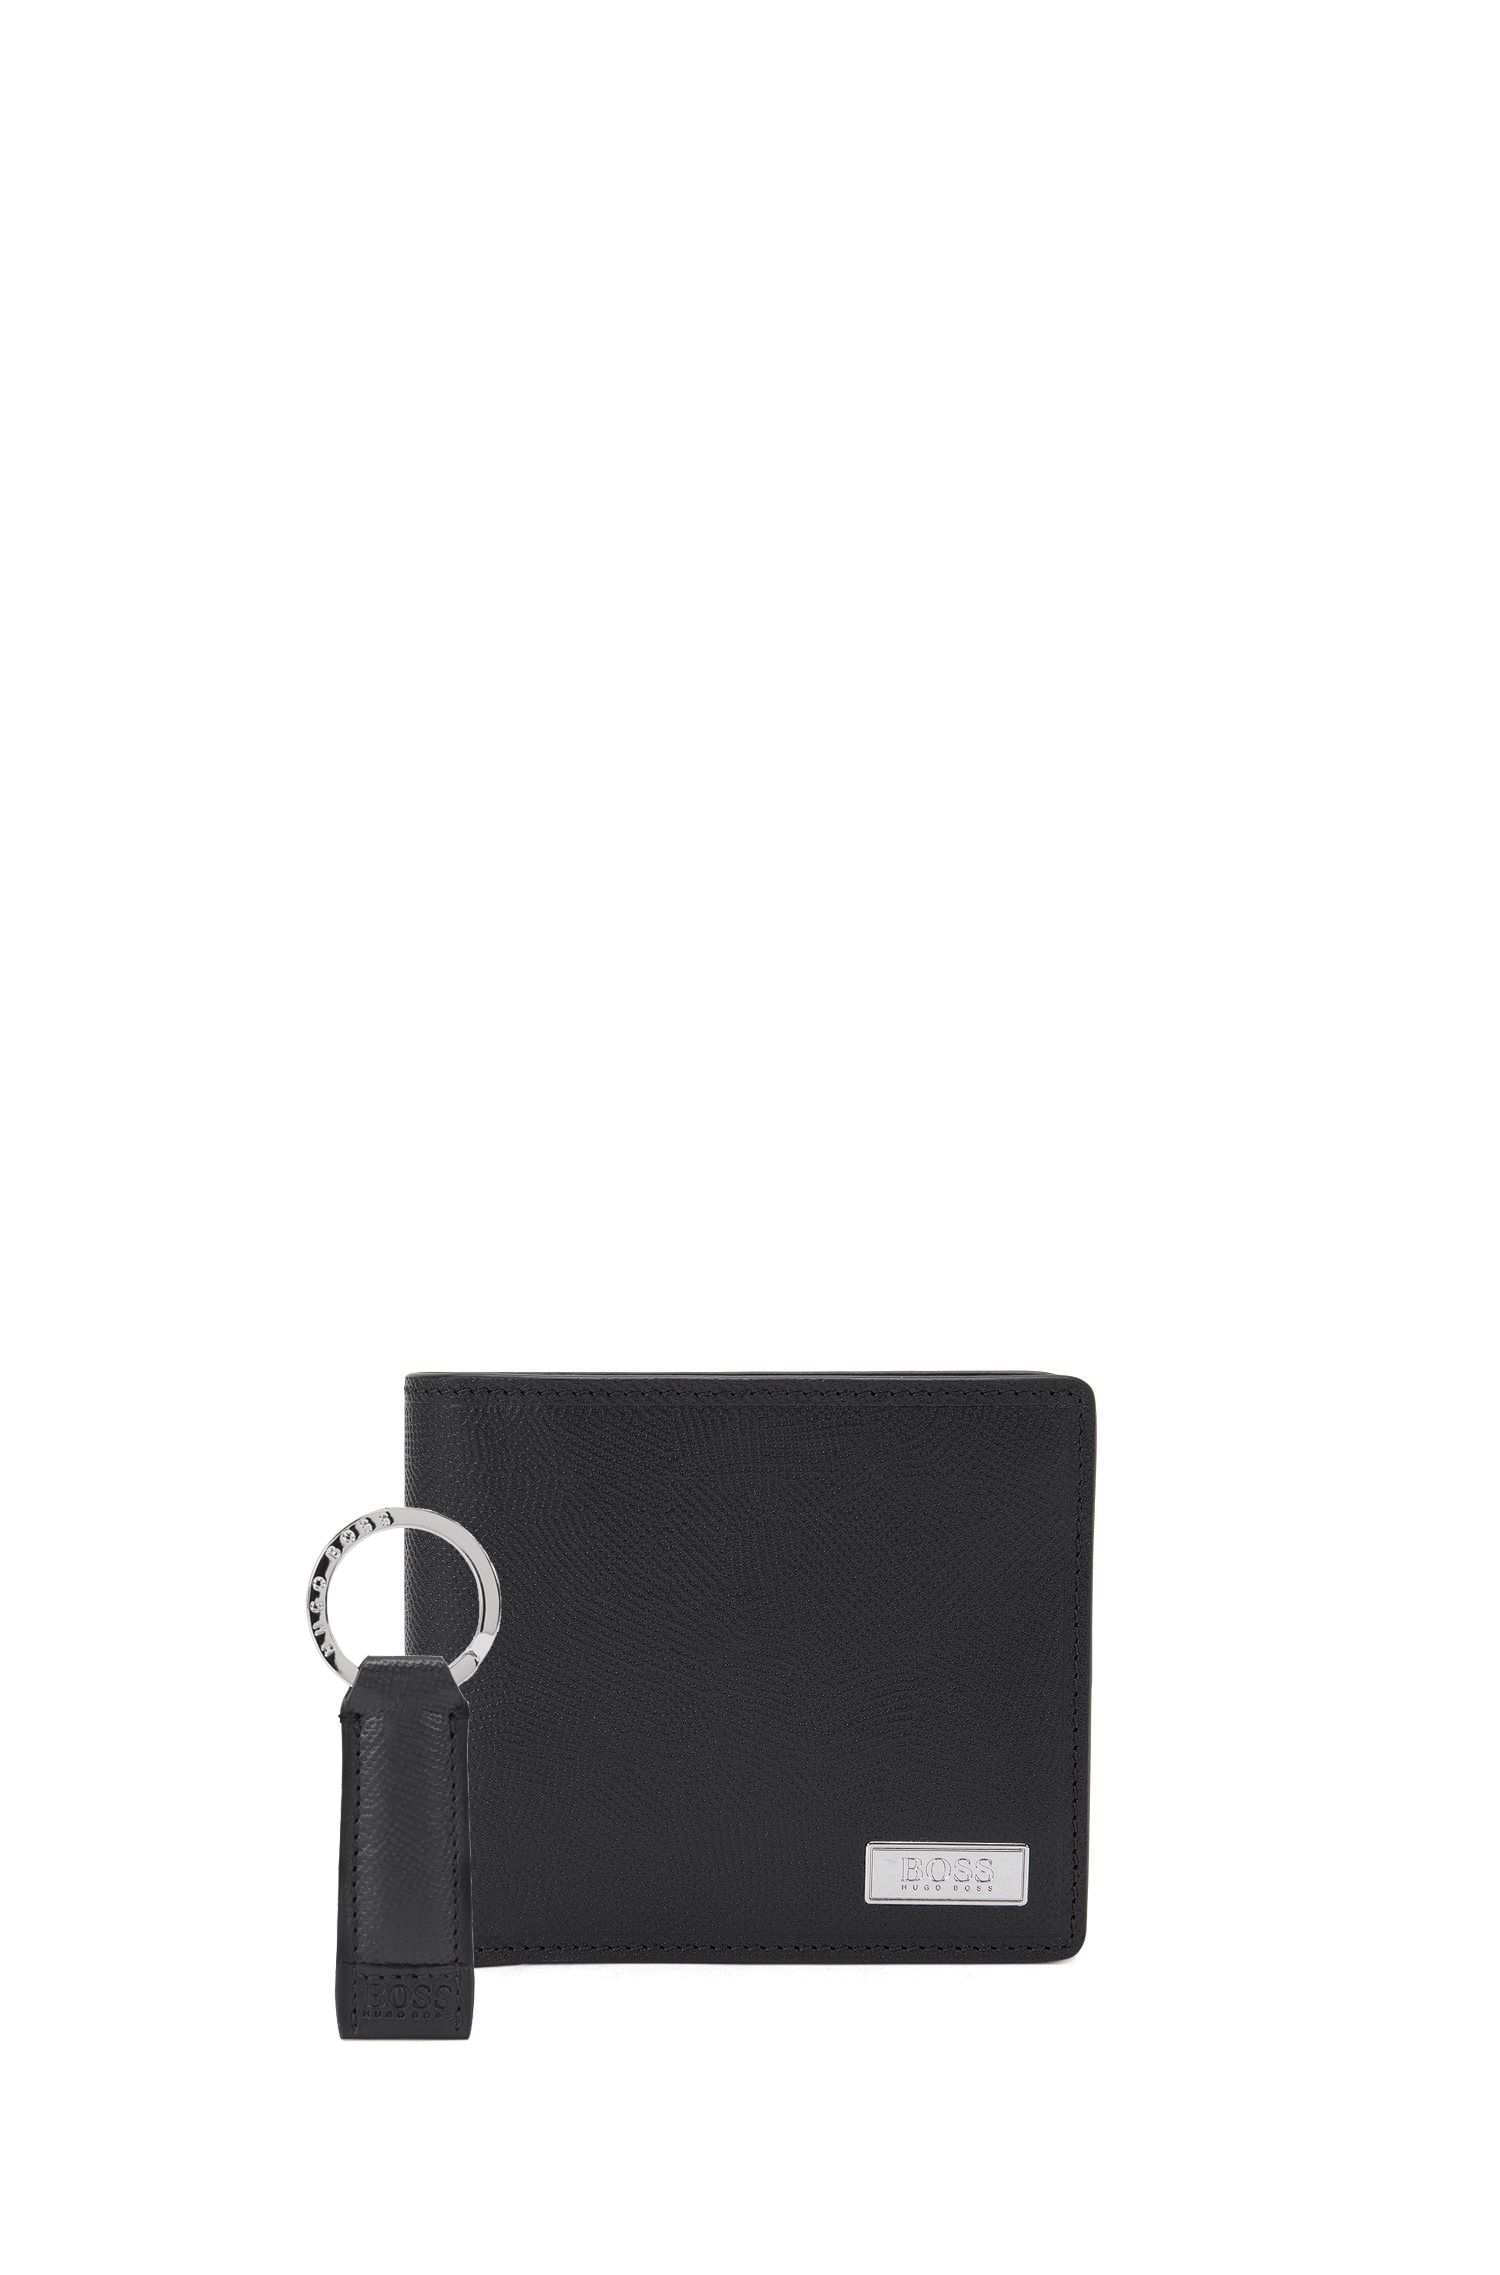 'Coin Key' | Leather Wallet & Key Ring Gift Set